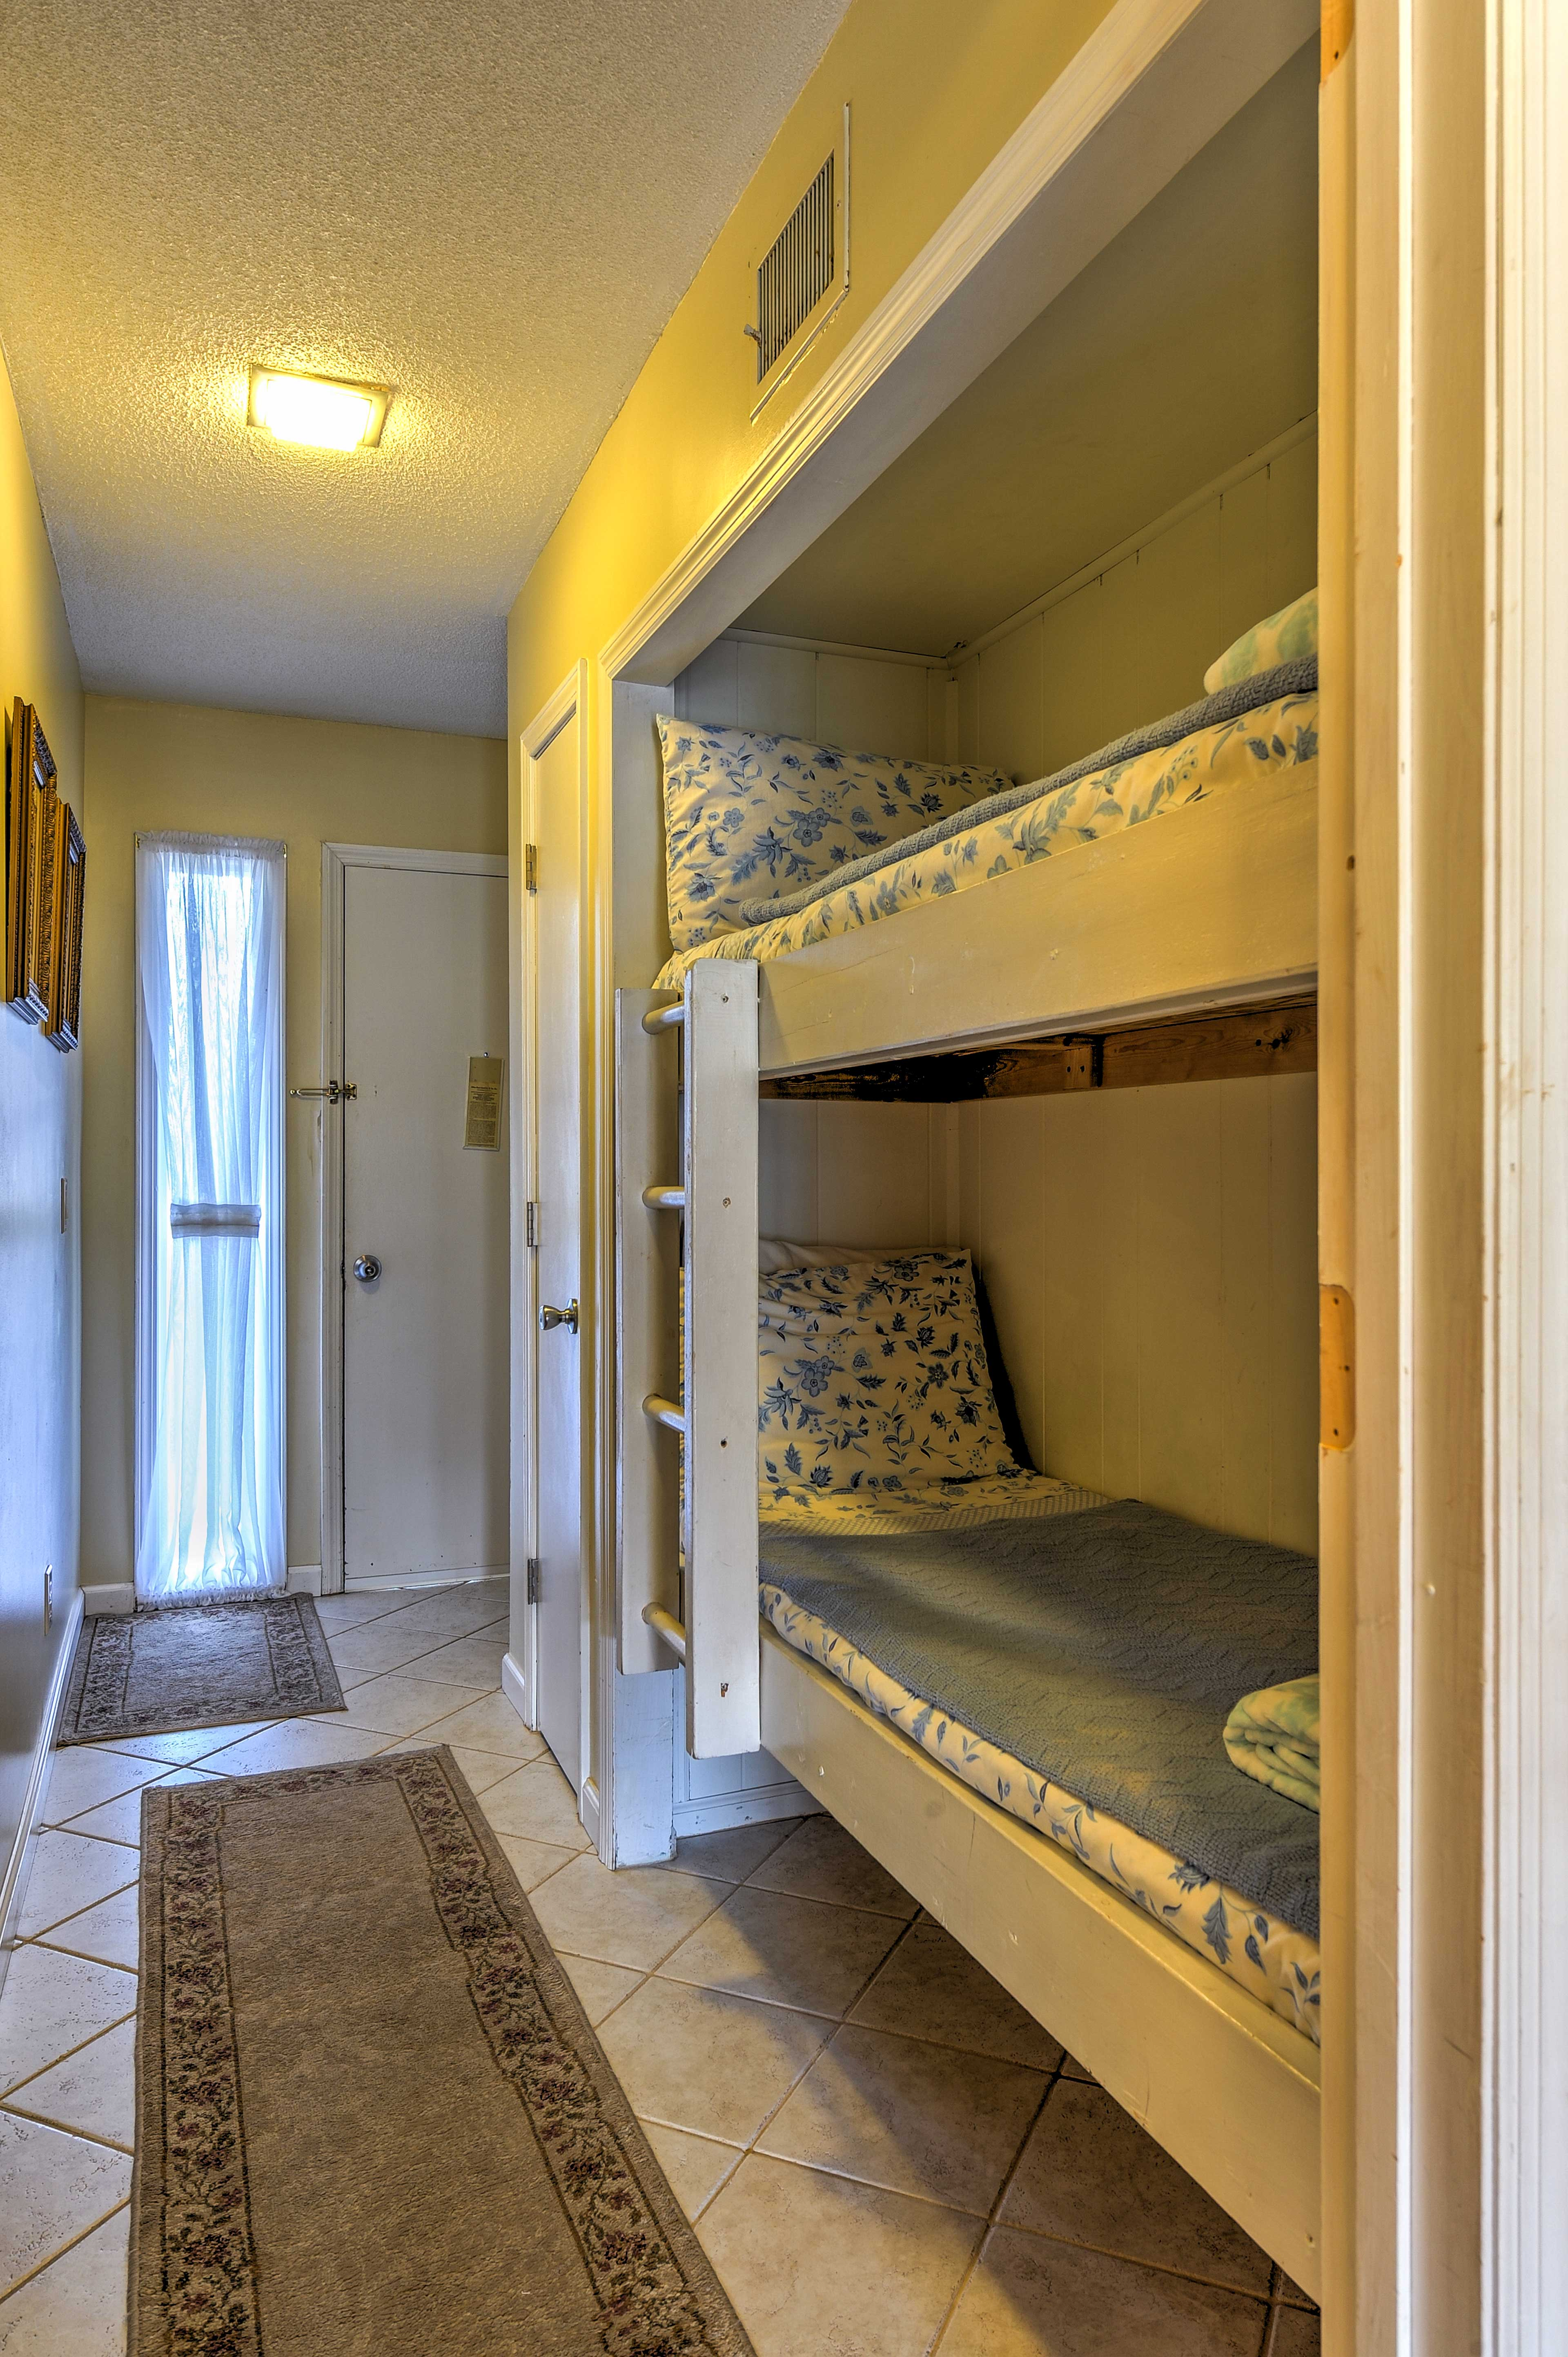 The kids will love the twin-over-twin bunk bed in the hallway.